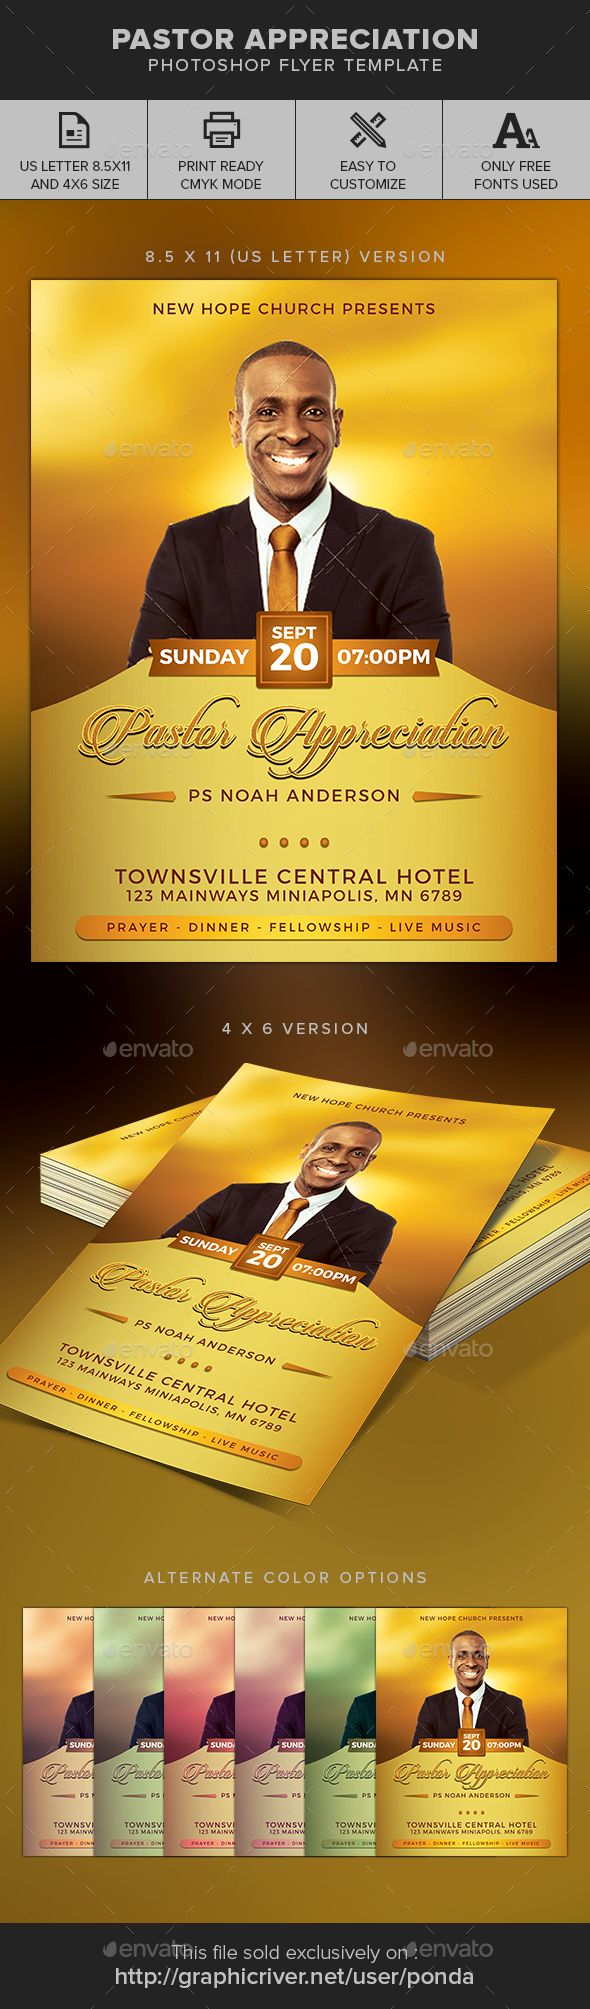 Best Church Marketing FlyerPoster Templates Images On